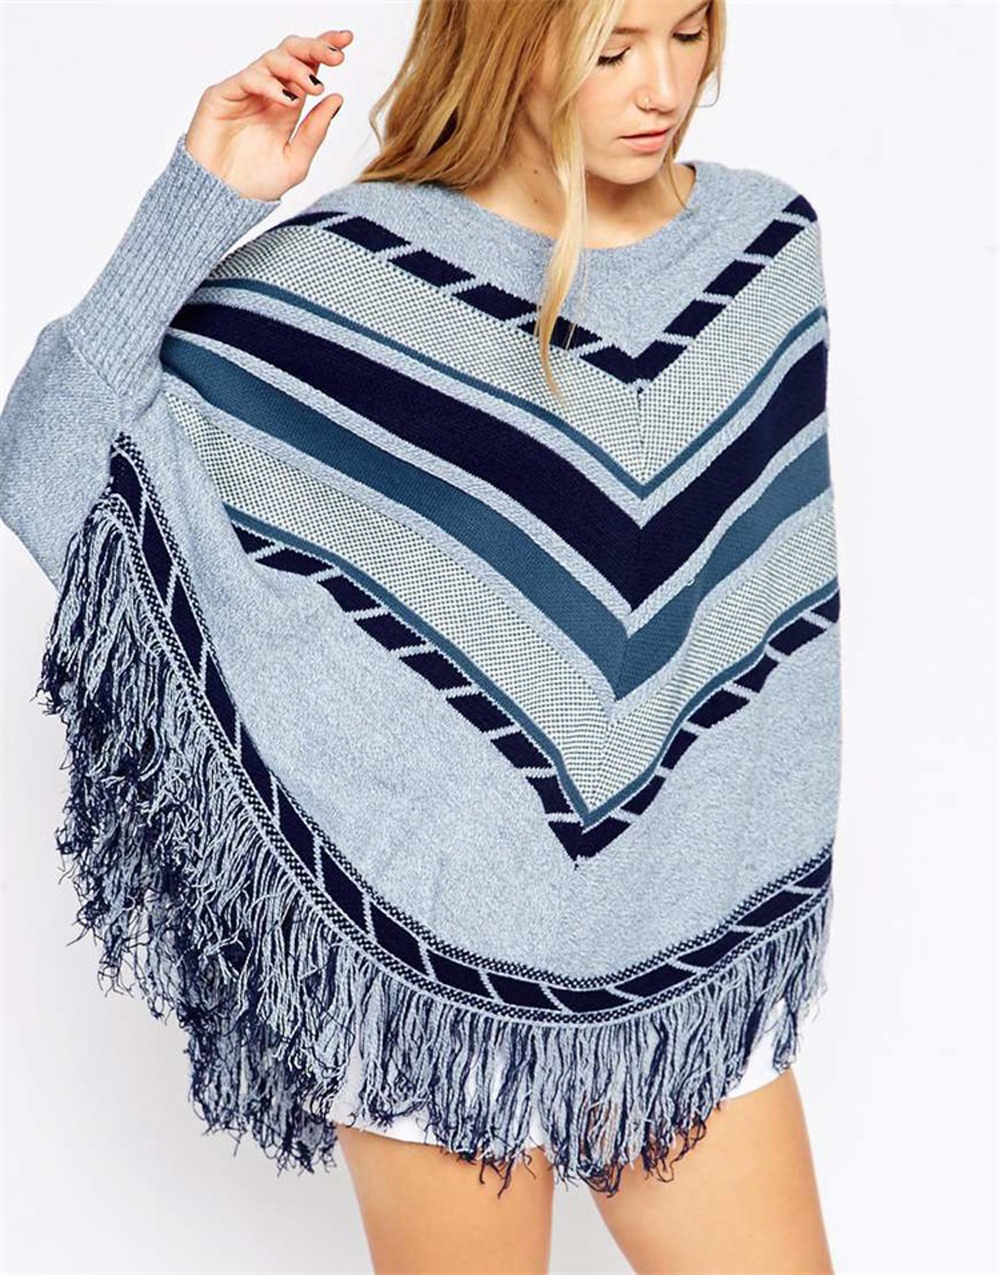 Maternity Tassel Cape Shawl Sweater Poncho Ladies' Cape with Fringed Hem Striped Patchwork Pullover Fashionable Retro Style uneven hem striped midi skirt